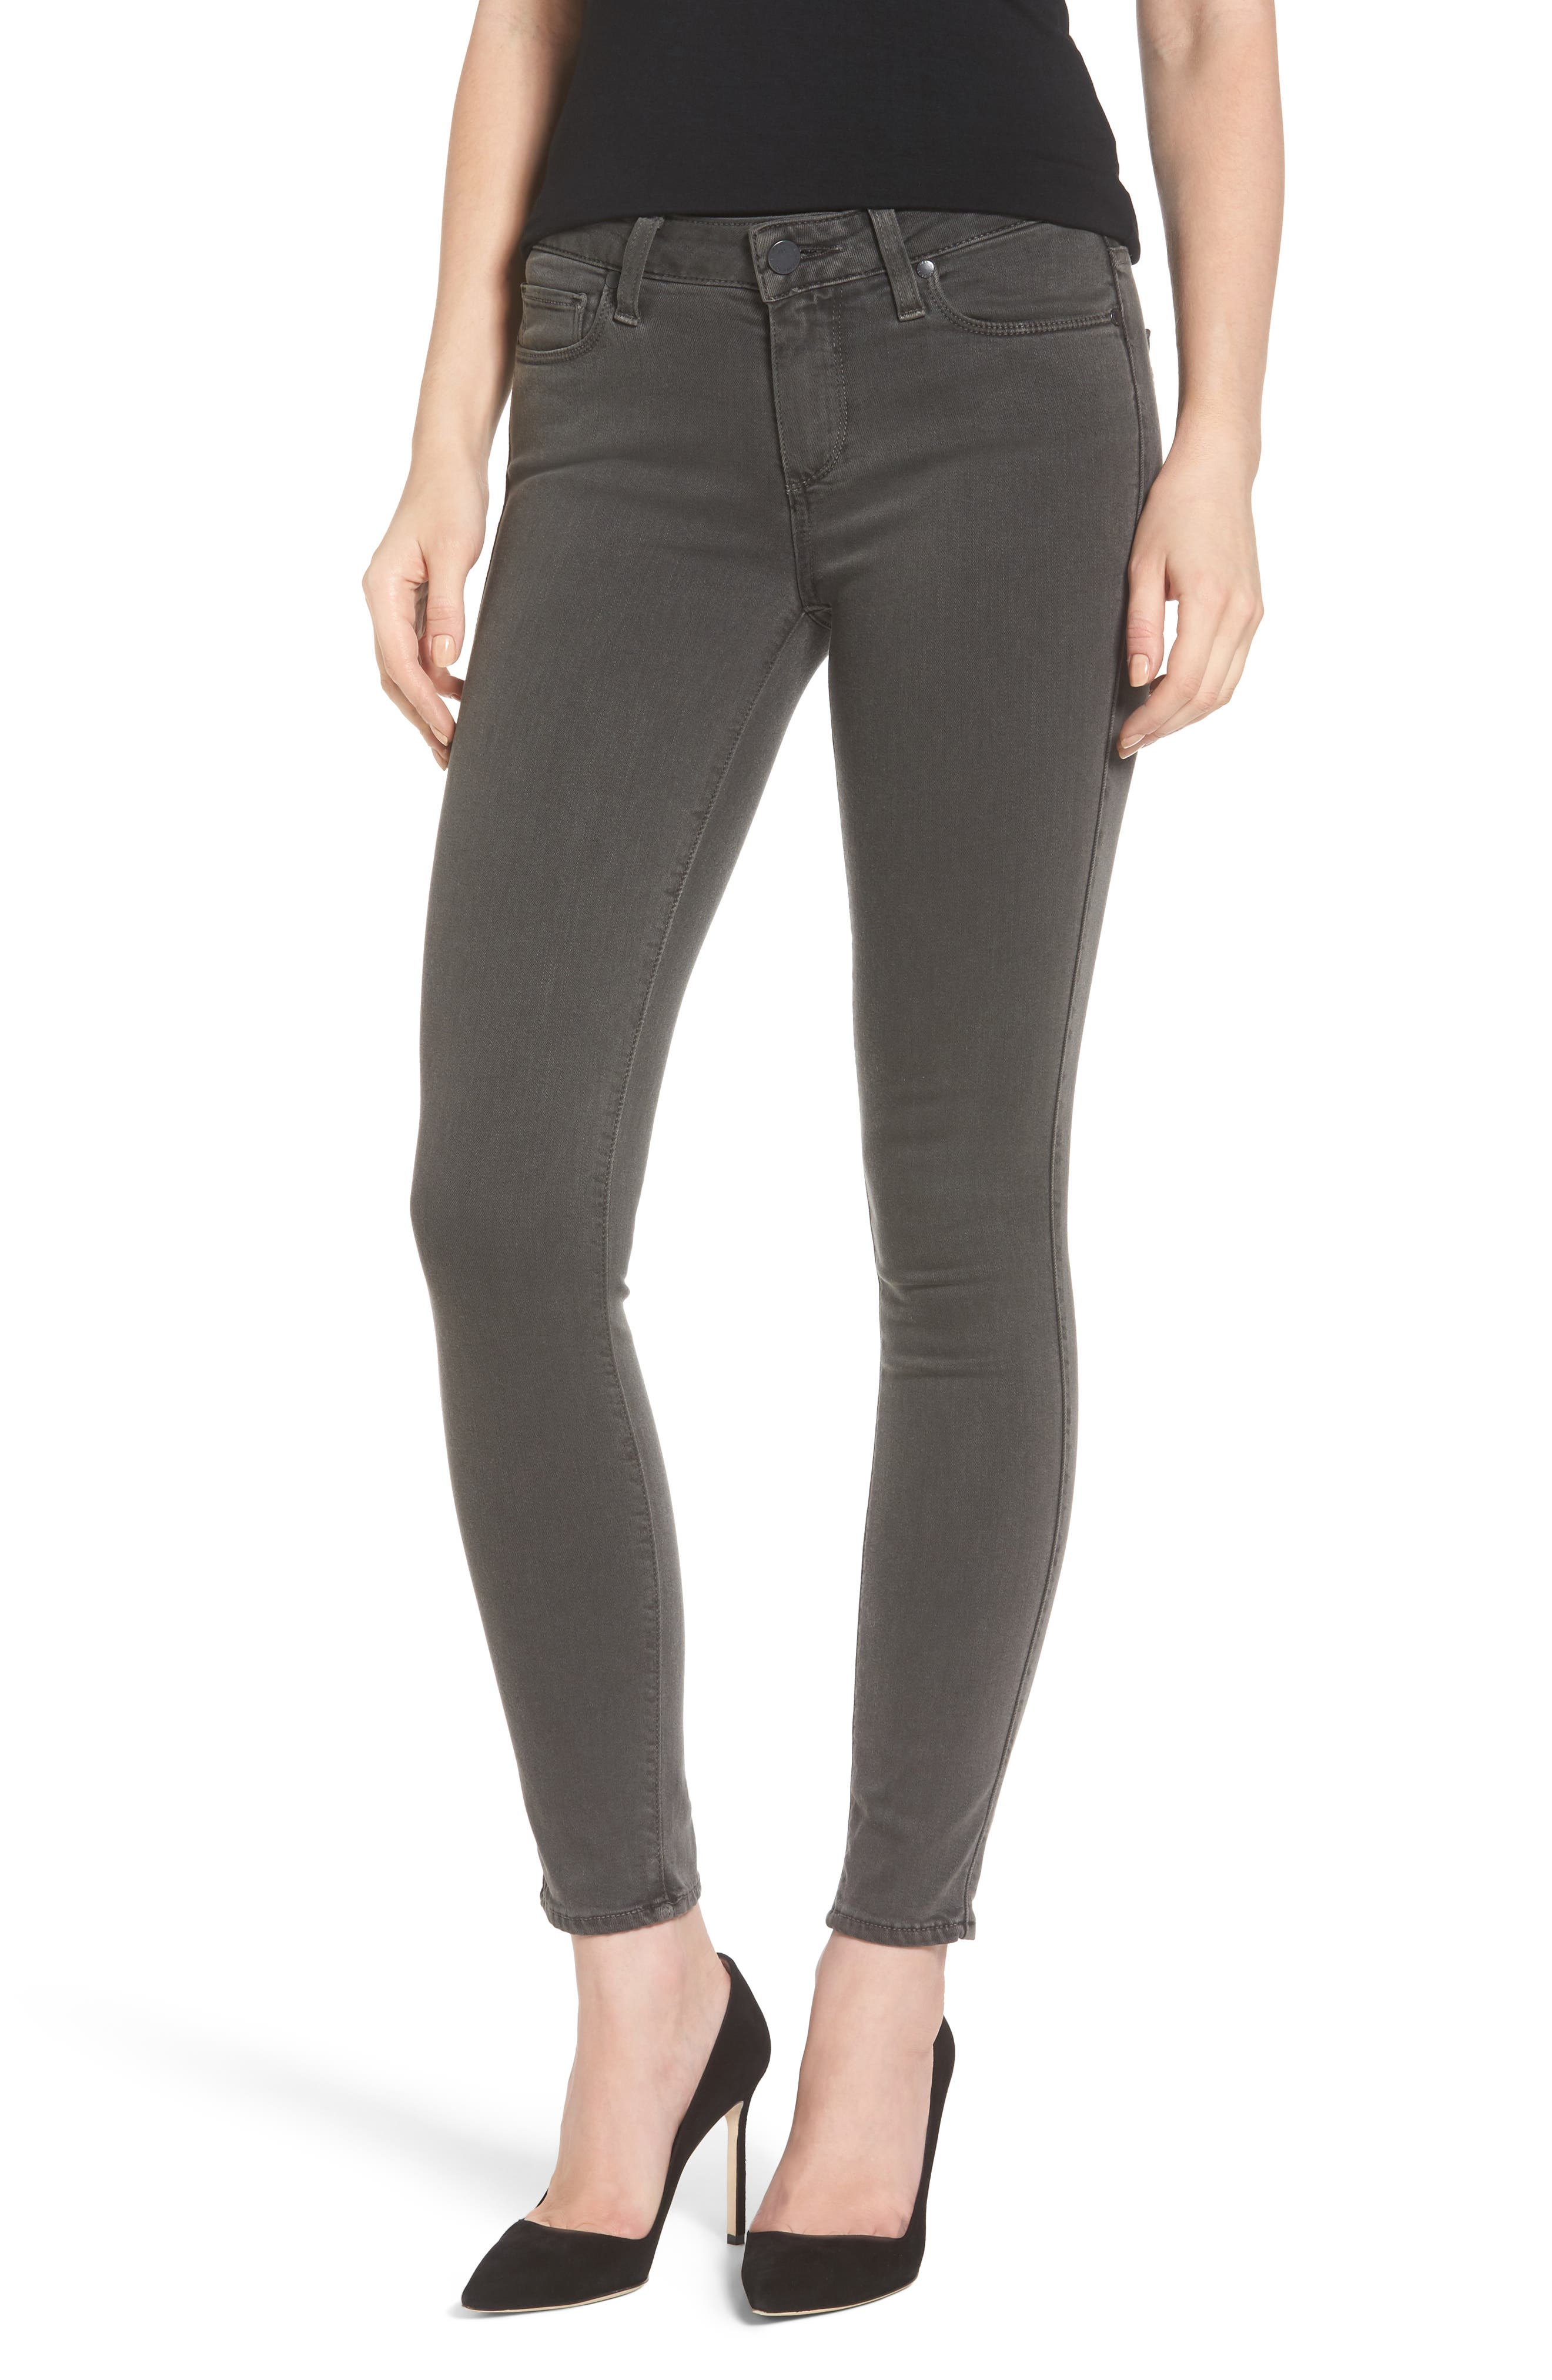 Transcend - Verdugo Ankle Skinny Jeans,                         Main,                         color, 021